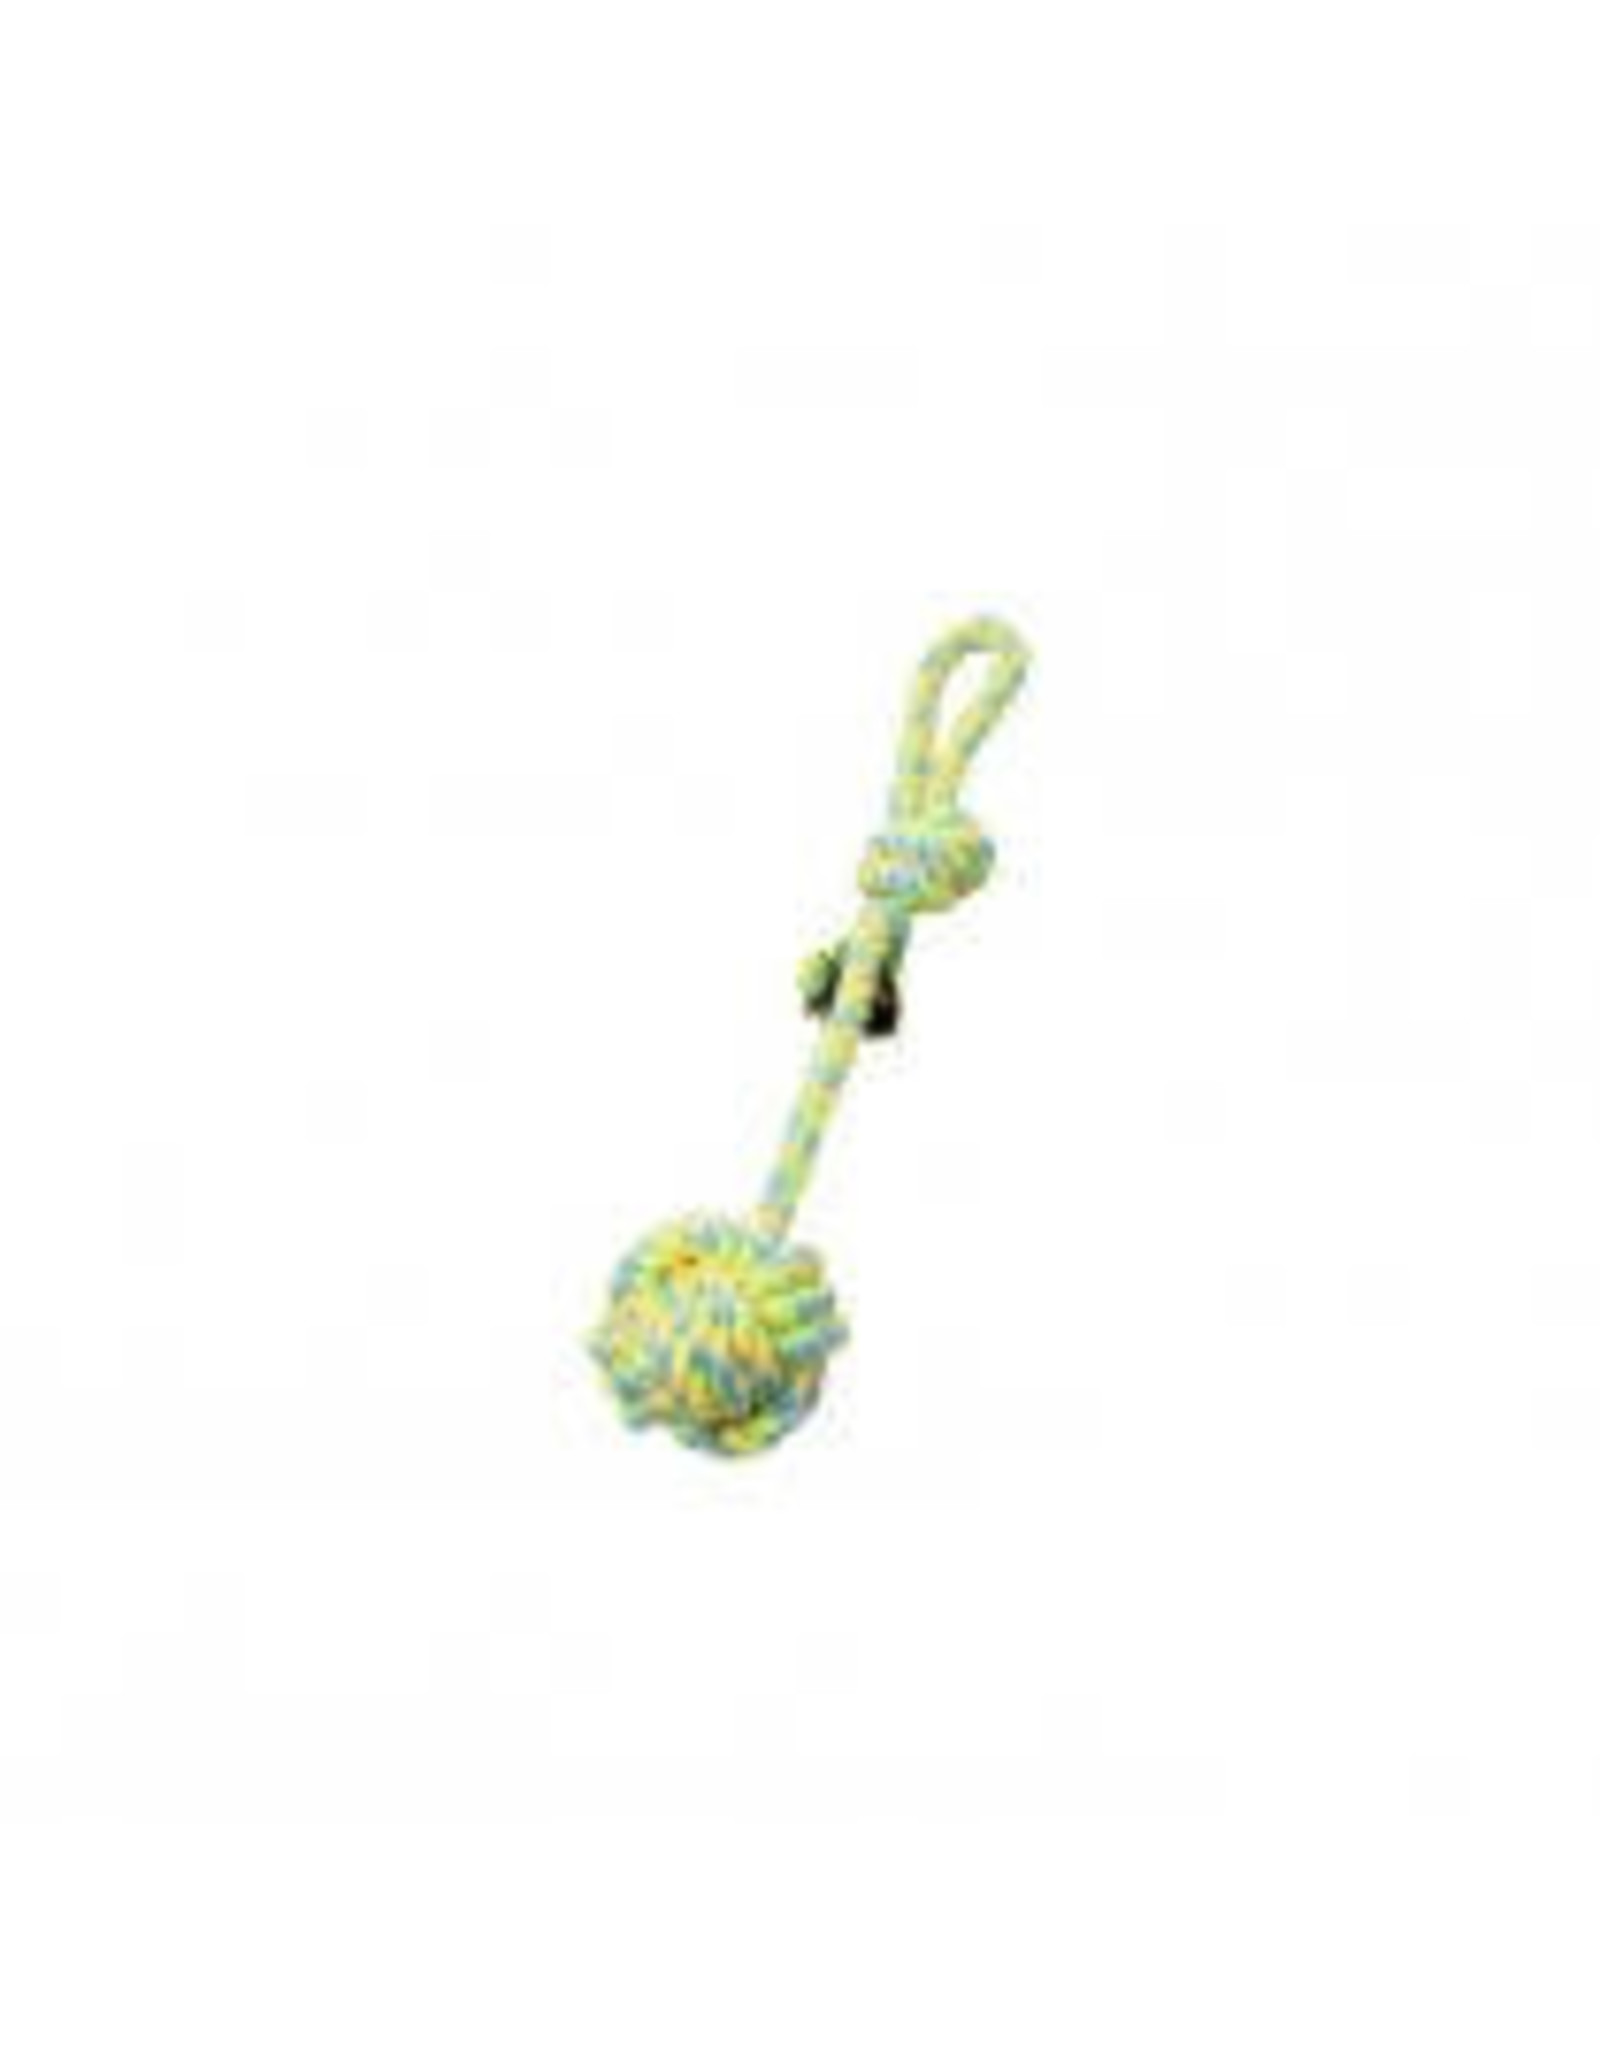 Budz Budz - Rope with Monkey Fist  with Stem & Loop  Green & Yellow